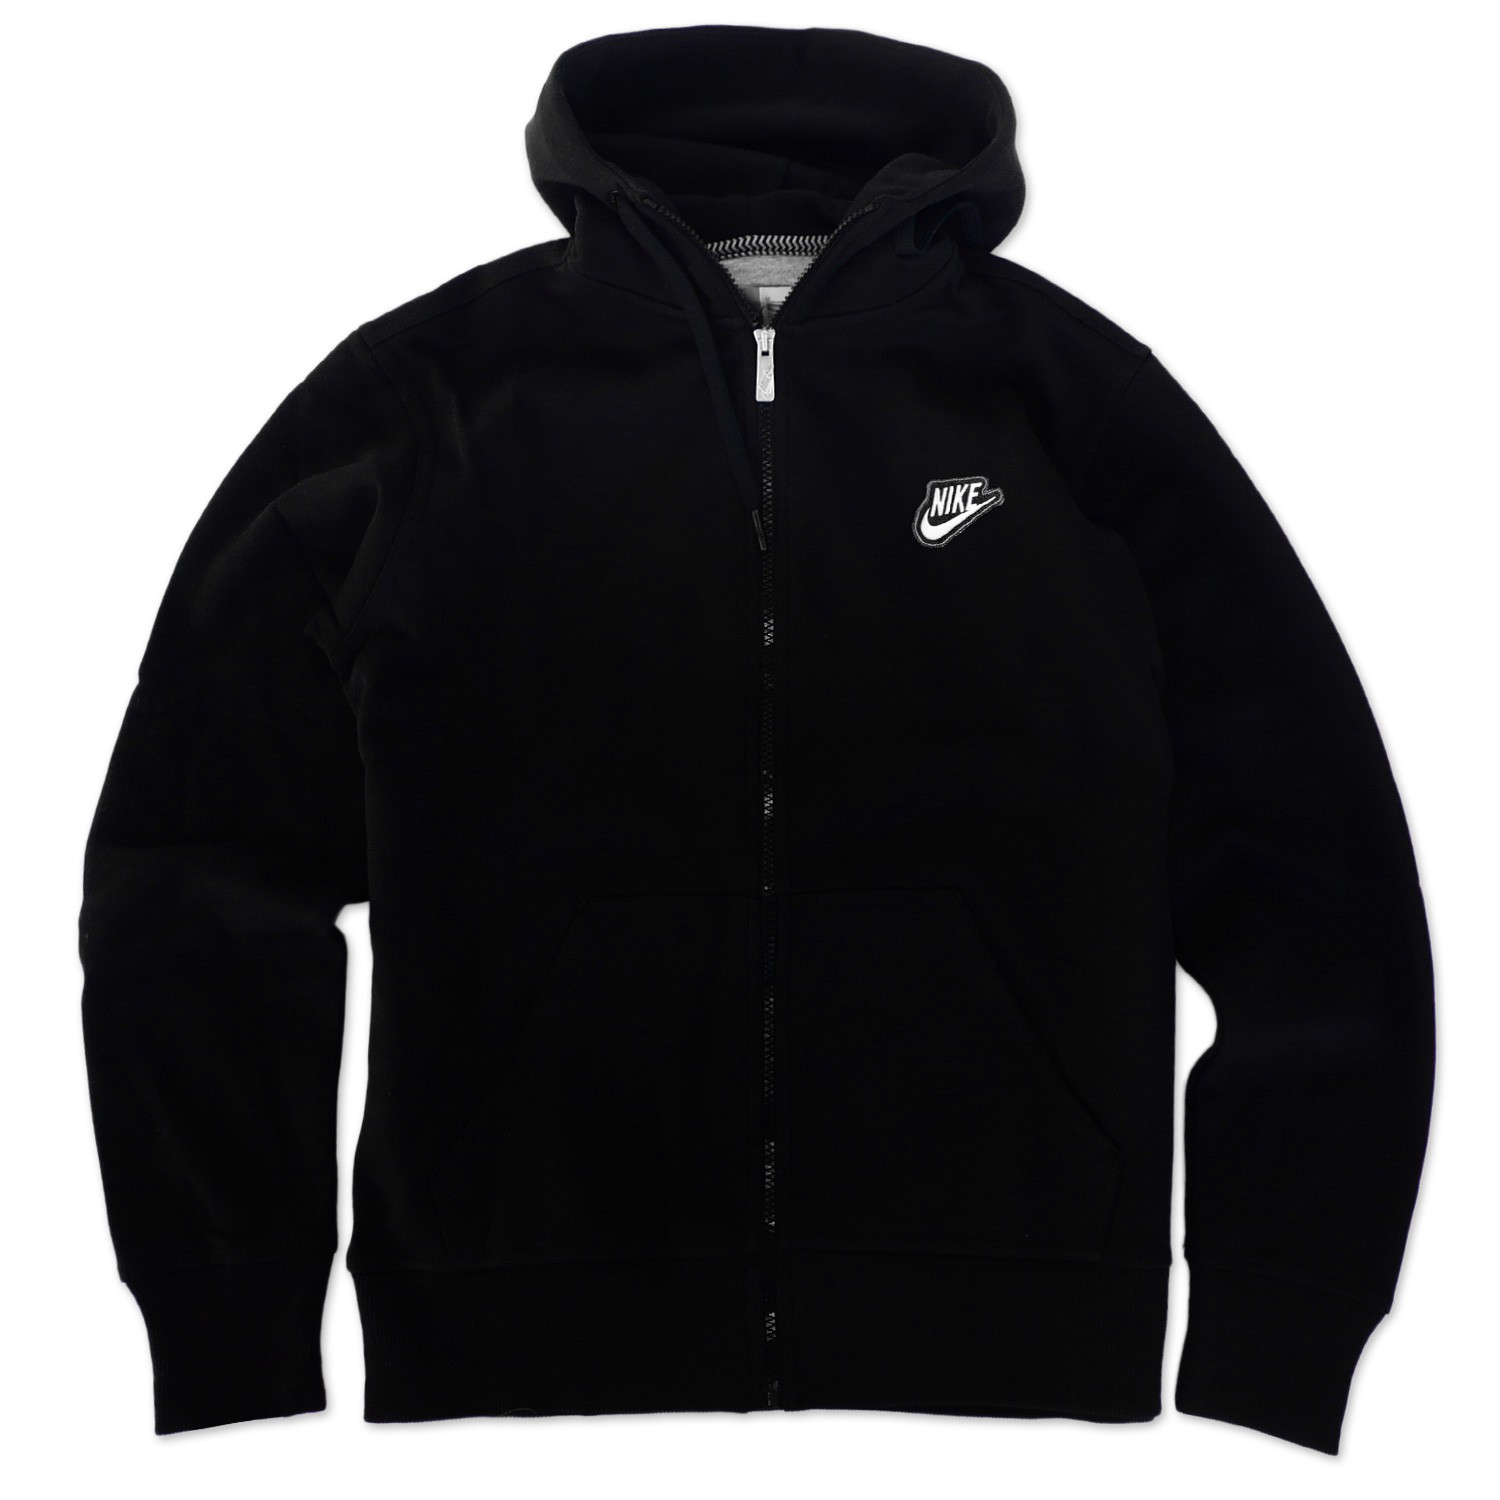 nike swoosh hoodie fleece hooded jacket hoody hoody sweatshirt black s xl ebay. Black Bedroom Furniture Sets. Home Design Ideas